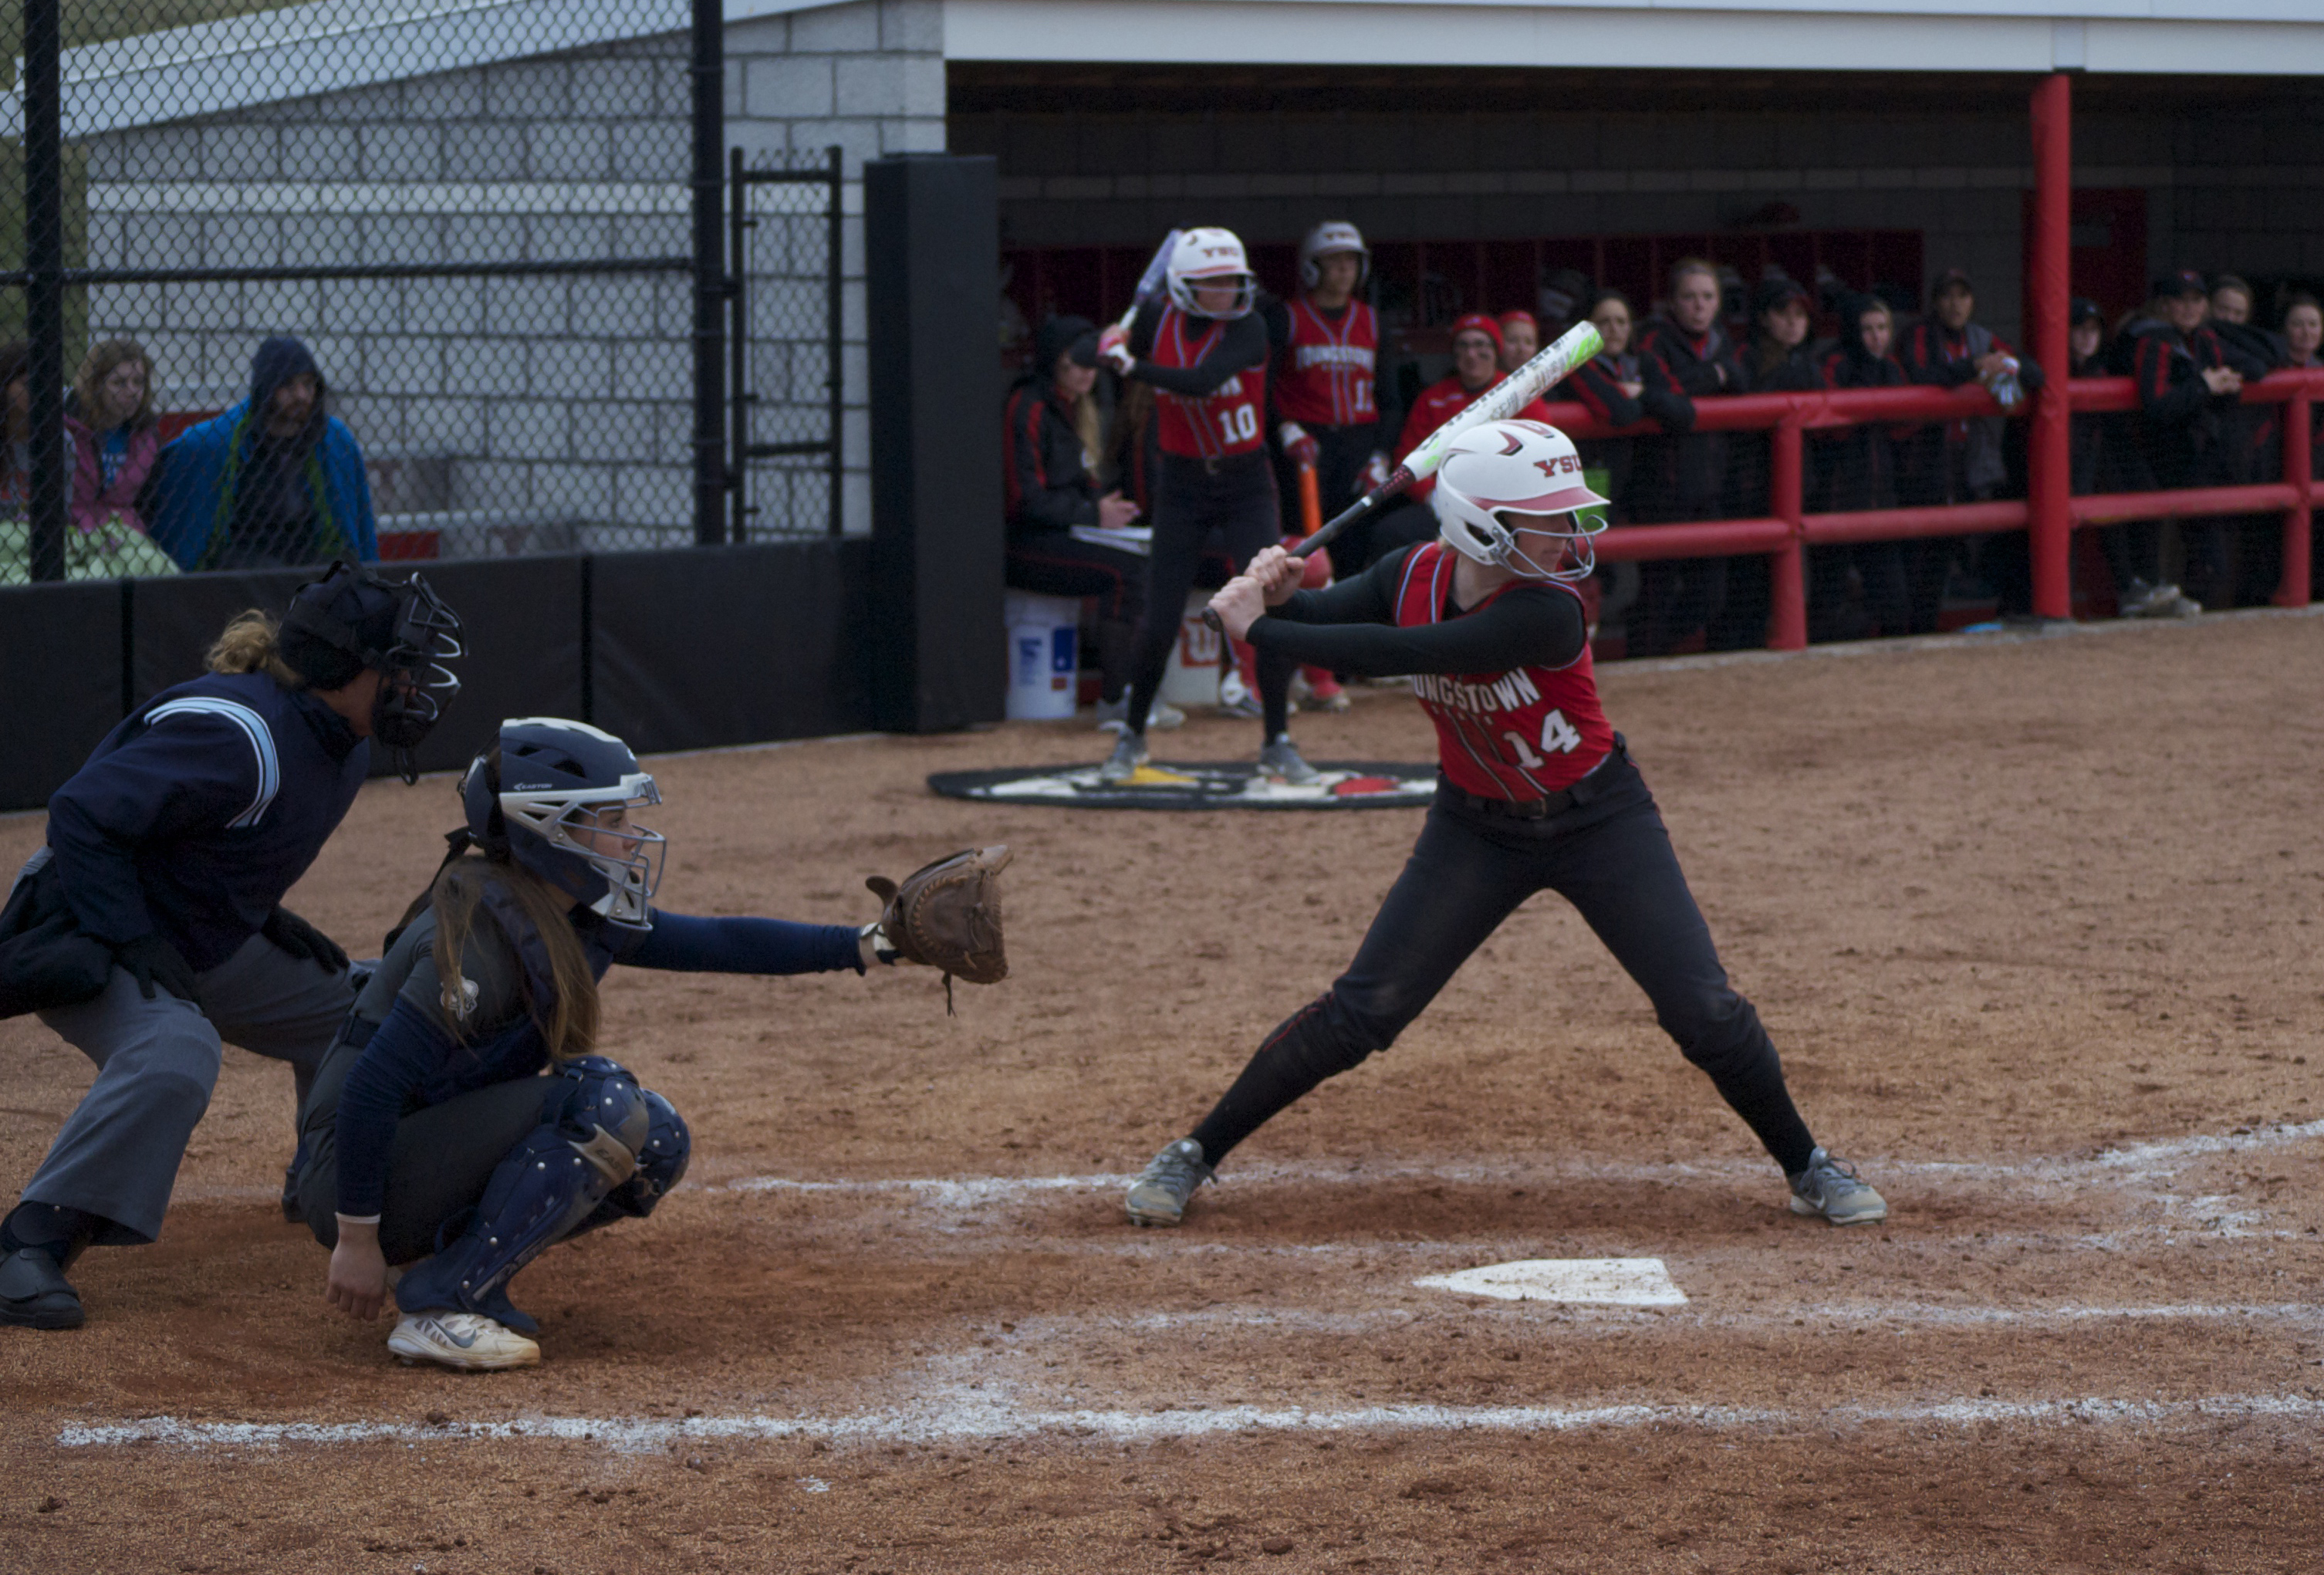 Leftfielder Sarah Dowd (14) hit a game-tying homerun in the bottom of the seventh inning to force extra innings in the Penguins 11-7 loss to Oakland University on April 1.